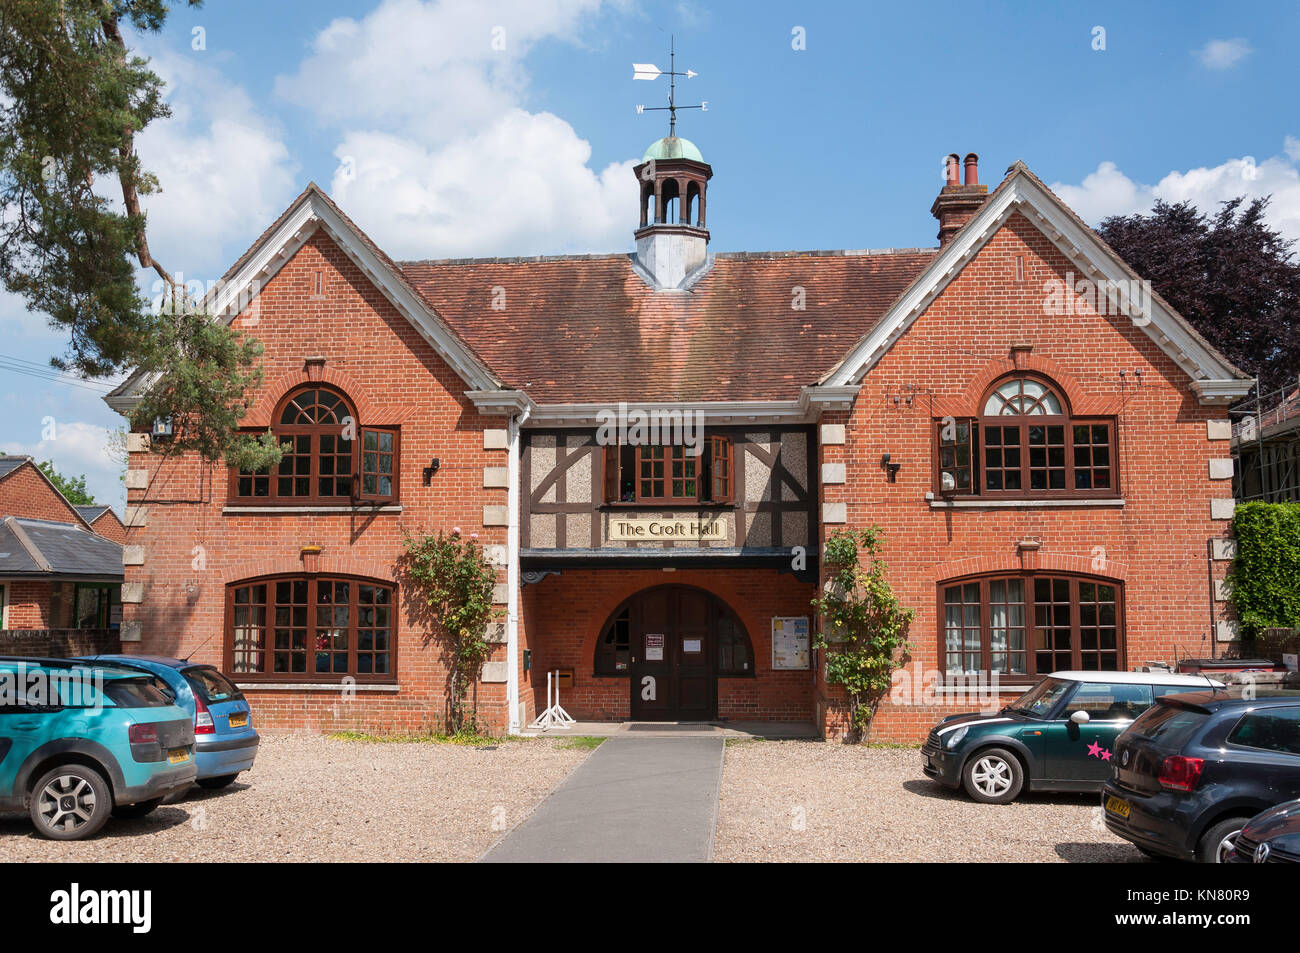 The Croft Hall, The Croft, Hungerford, Berkshire, England, United Kingdom - Stock Image